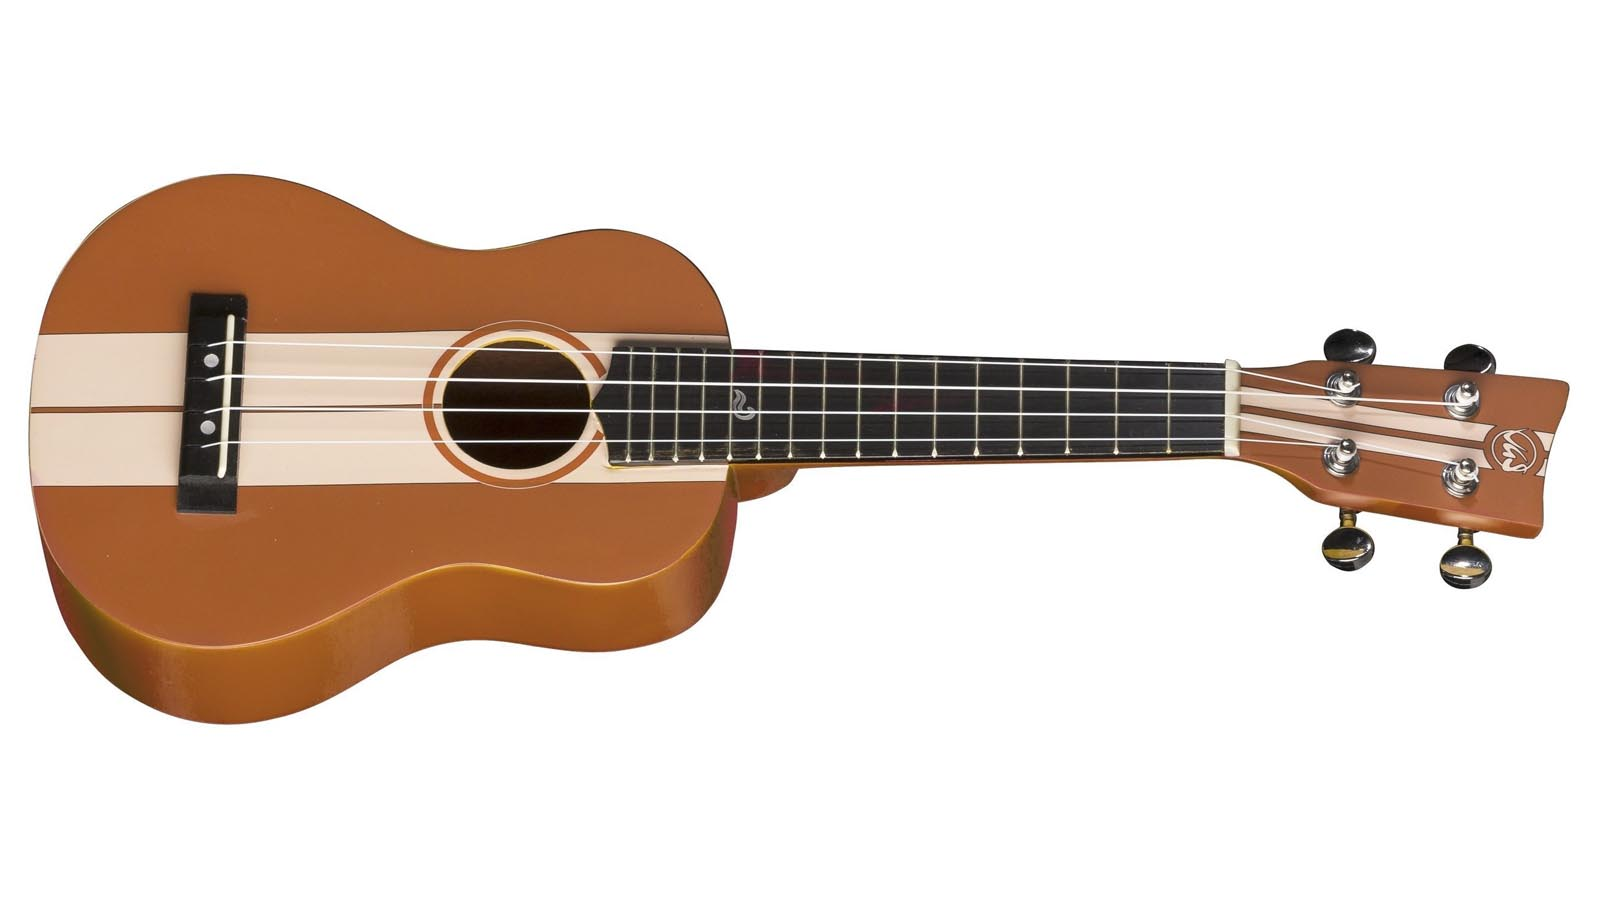 VGS Manoa W-SO-OR Sopran Ukulele